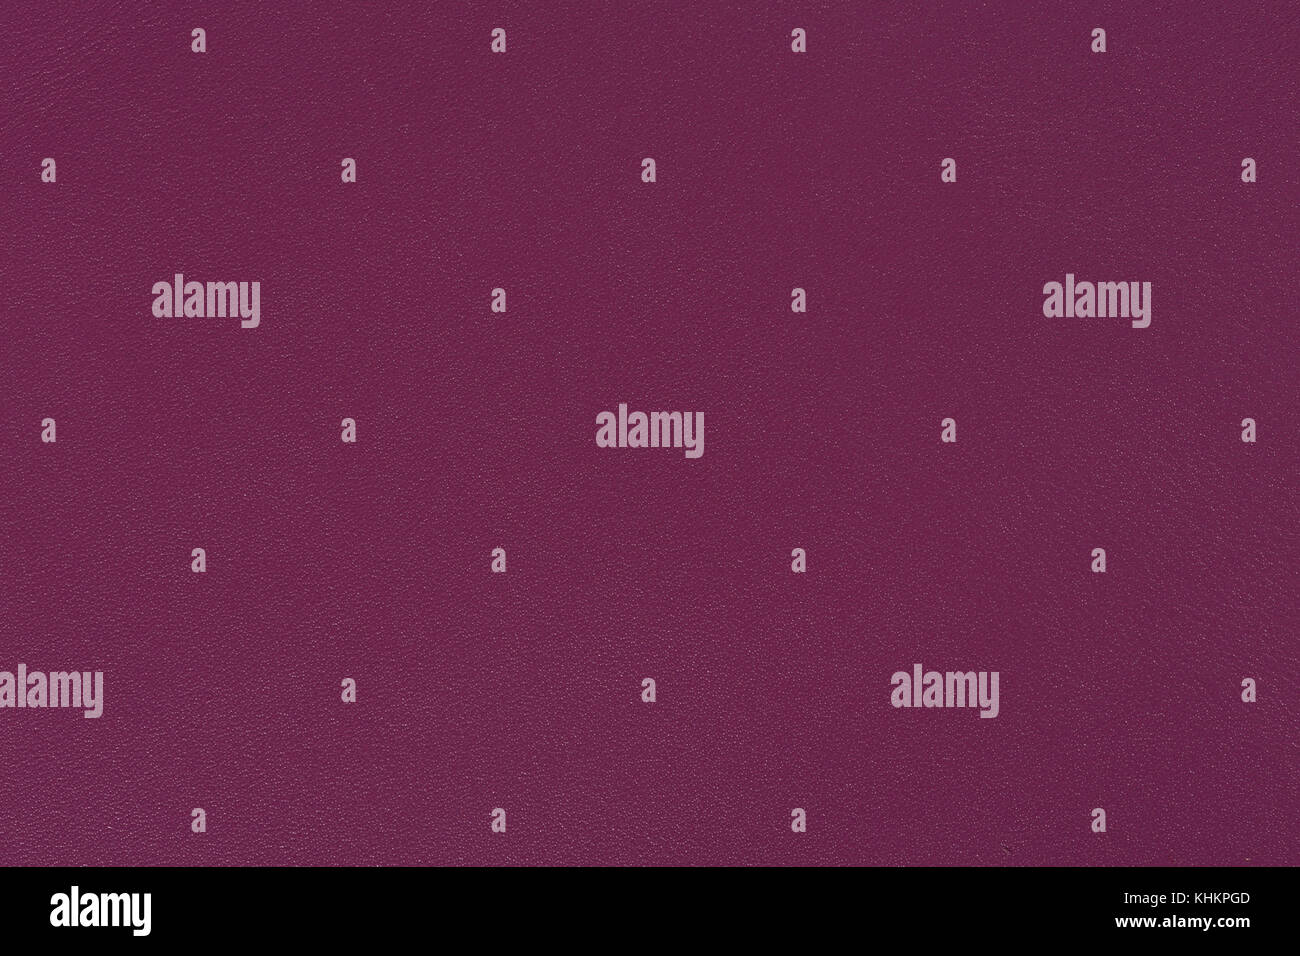 Violet leather for background usage. High resolution photo. - Stock Image